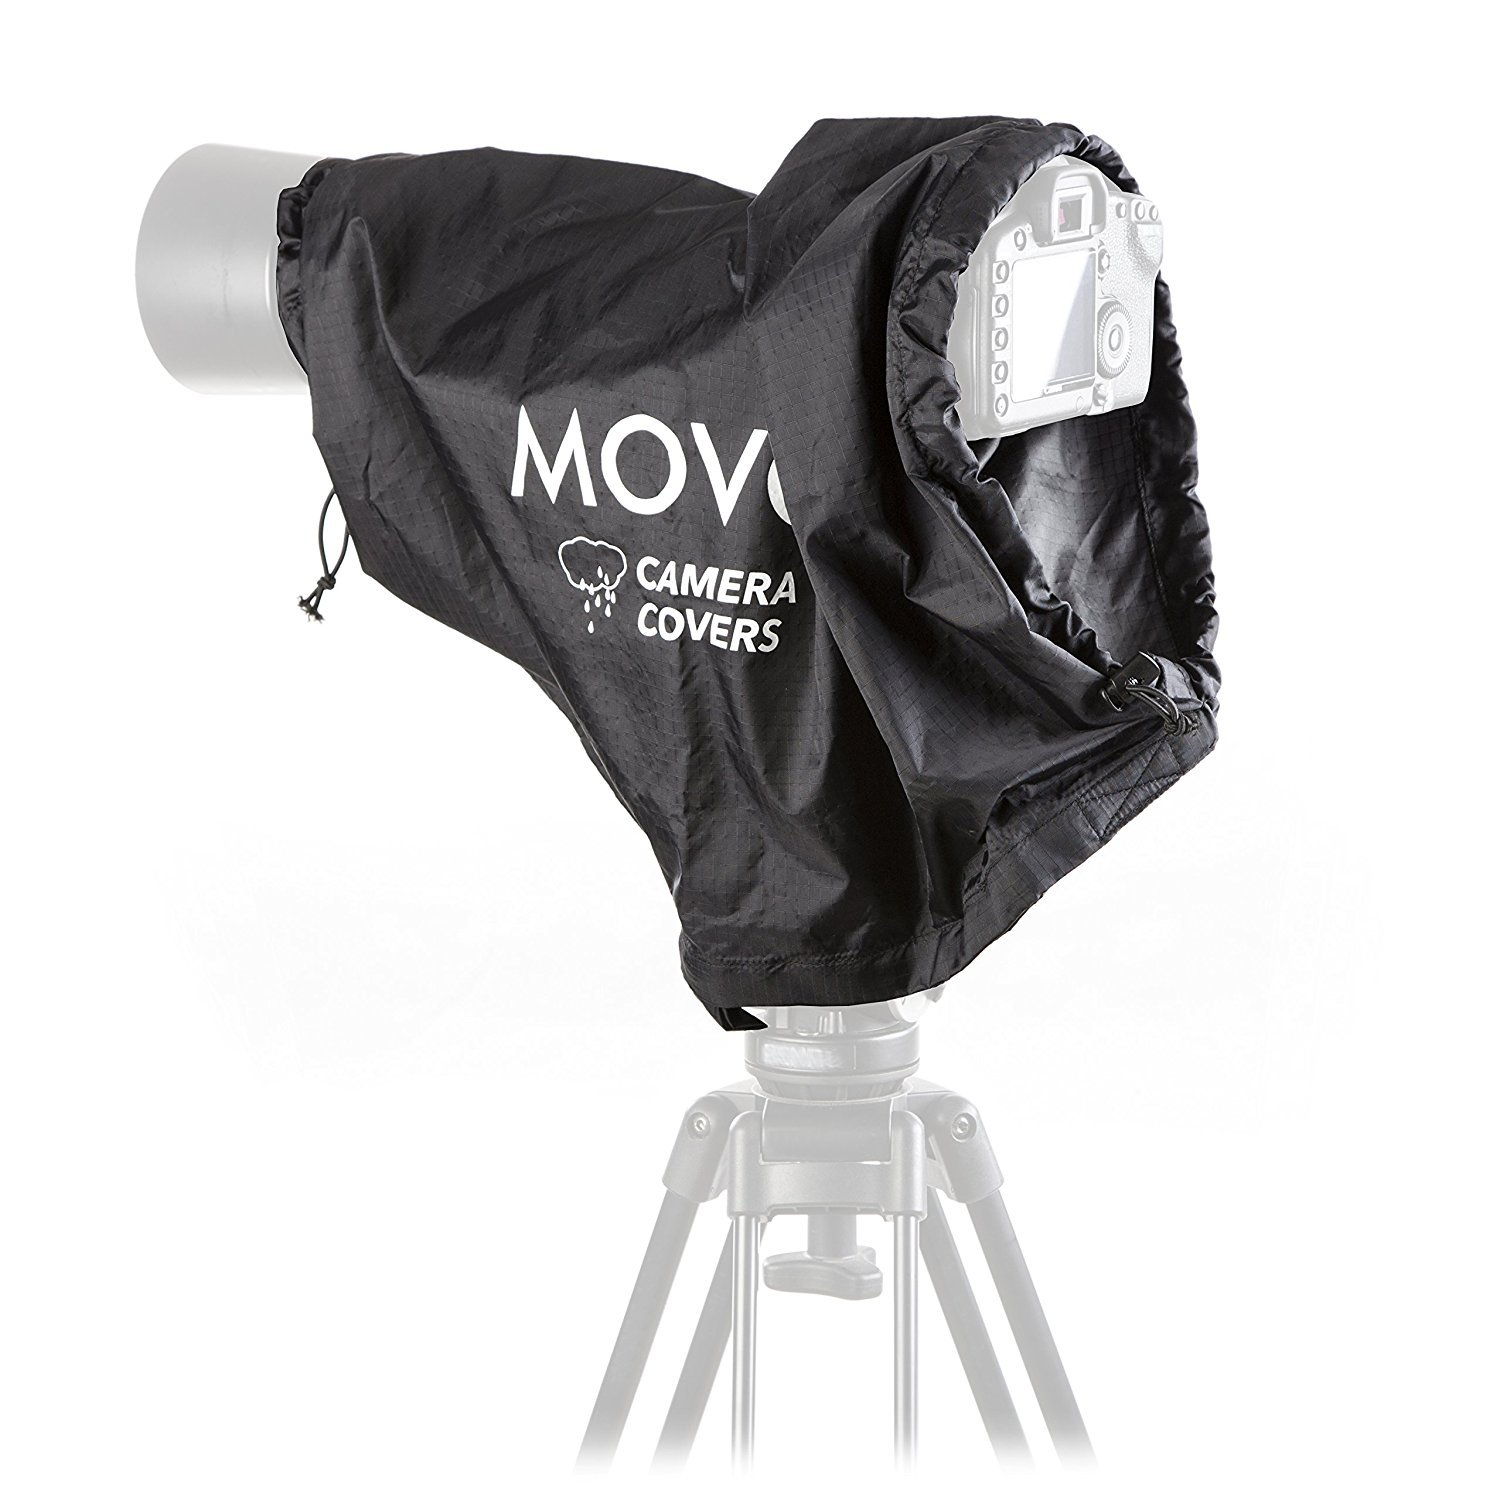 Movo CRC23 Storm Raincover Protector for DSLR Cameras, Lenses, Photographic Equipment (Medium Size: 23 x 14.5) by Movo